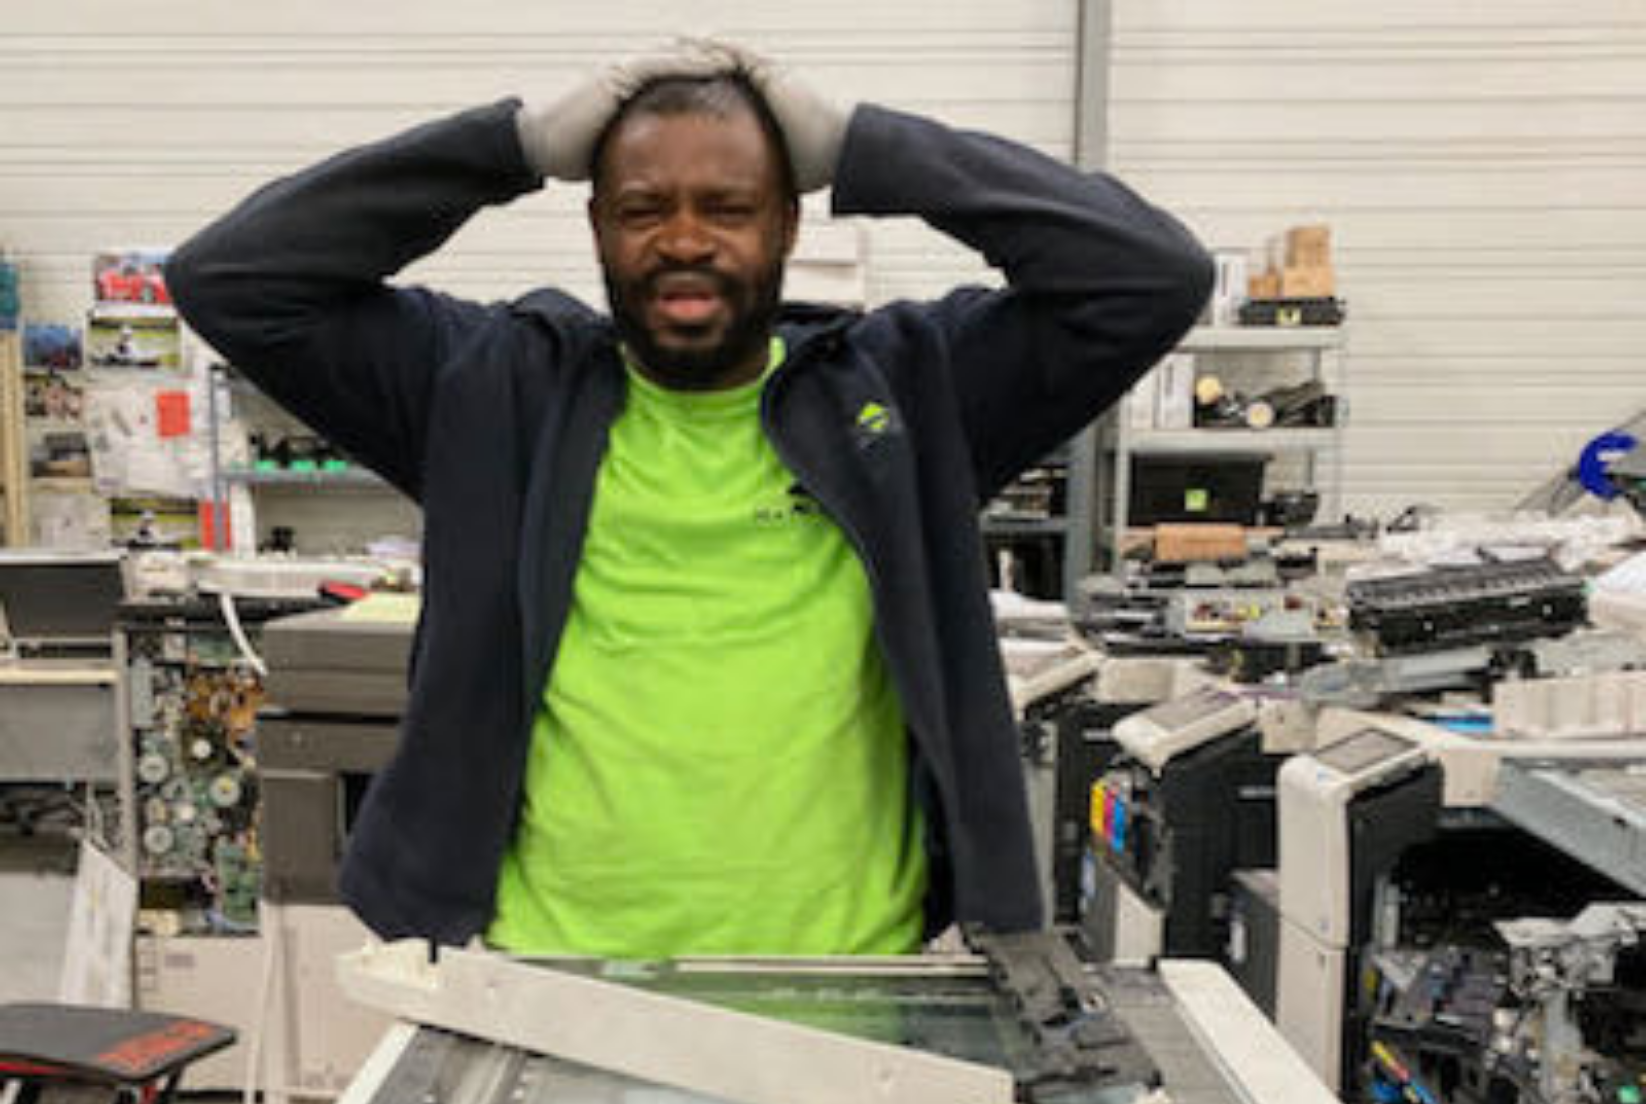 Photocopier Repair: How do we deal with it?